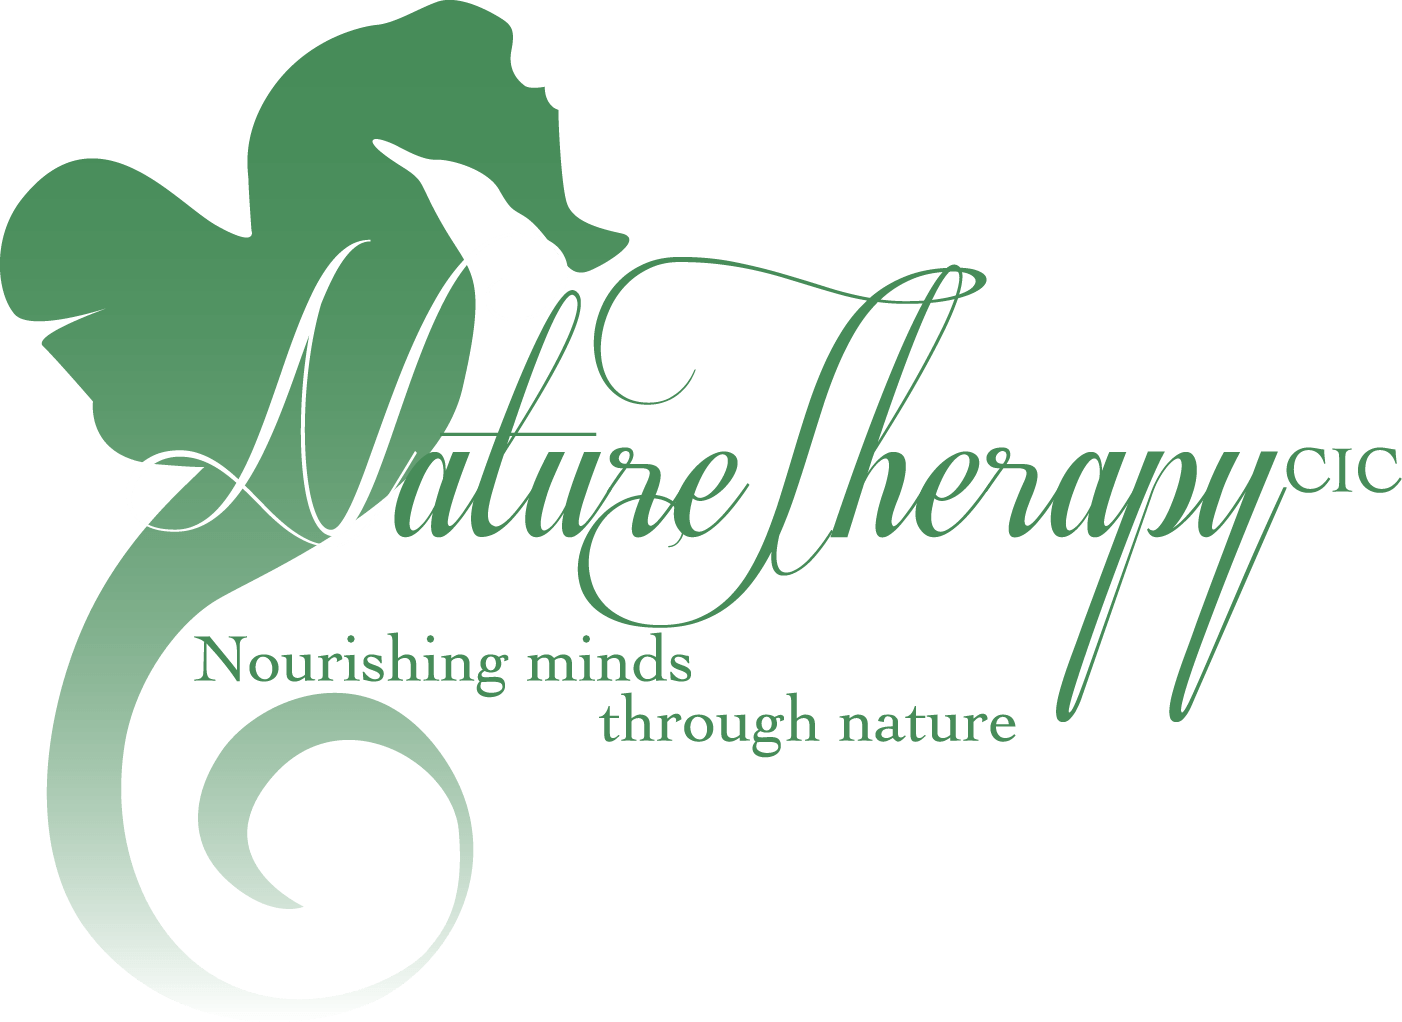 Nature Therapy CIC